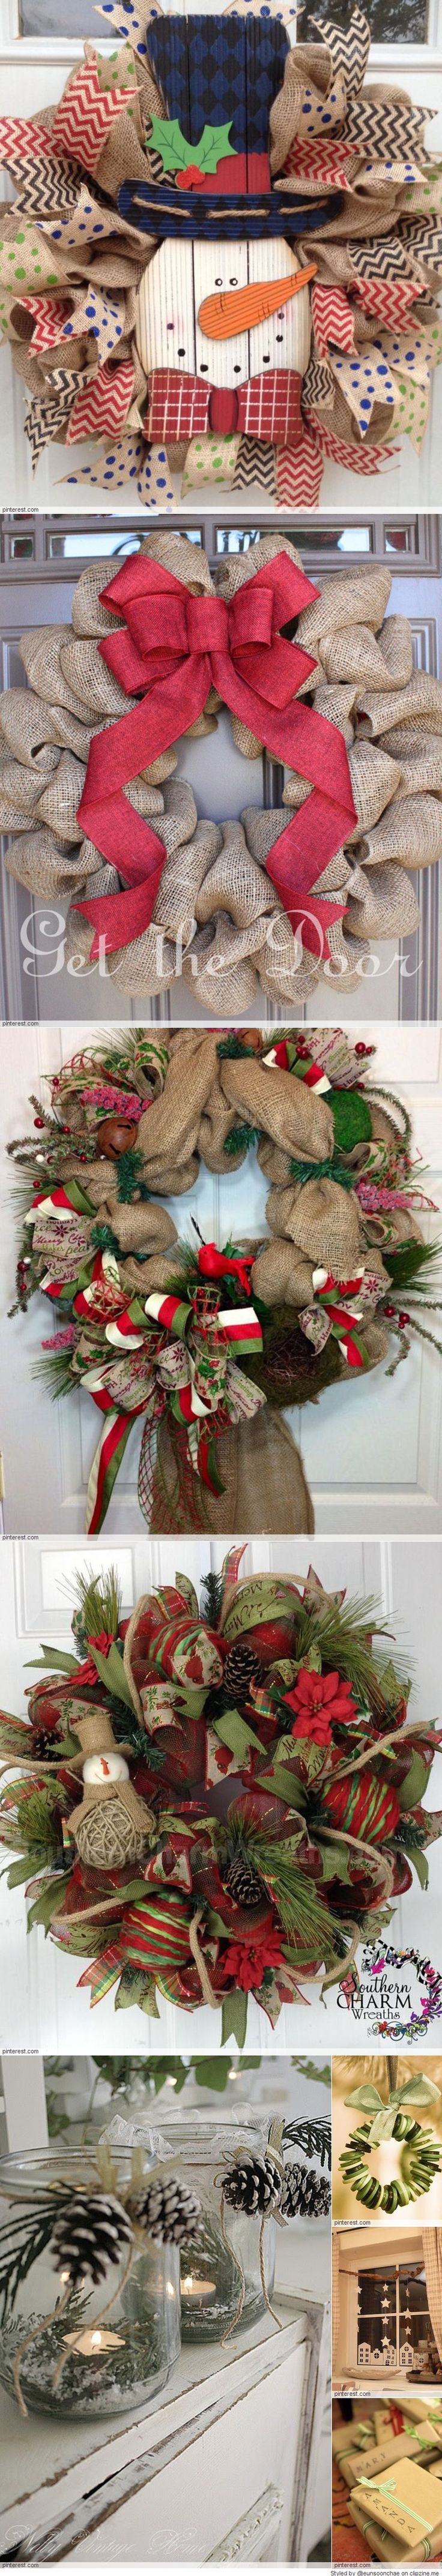 18 best wreaths images on Pinterest